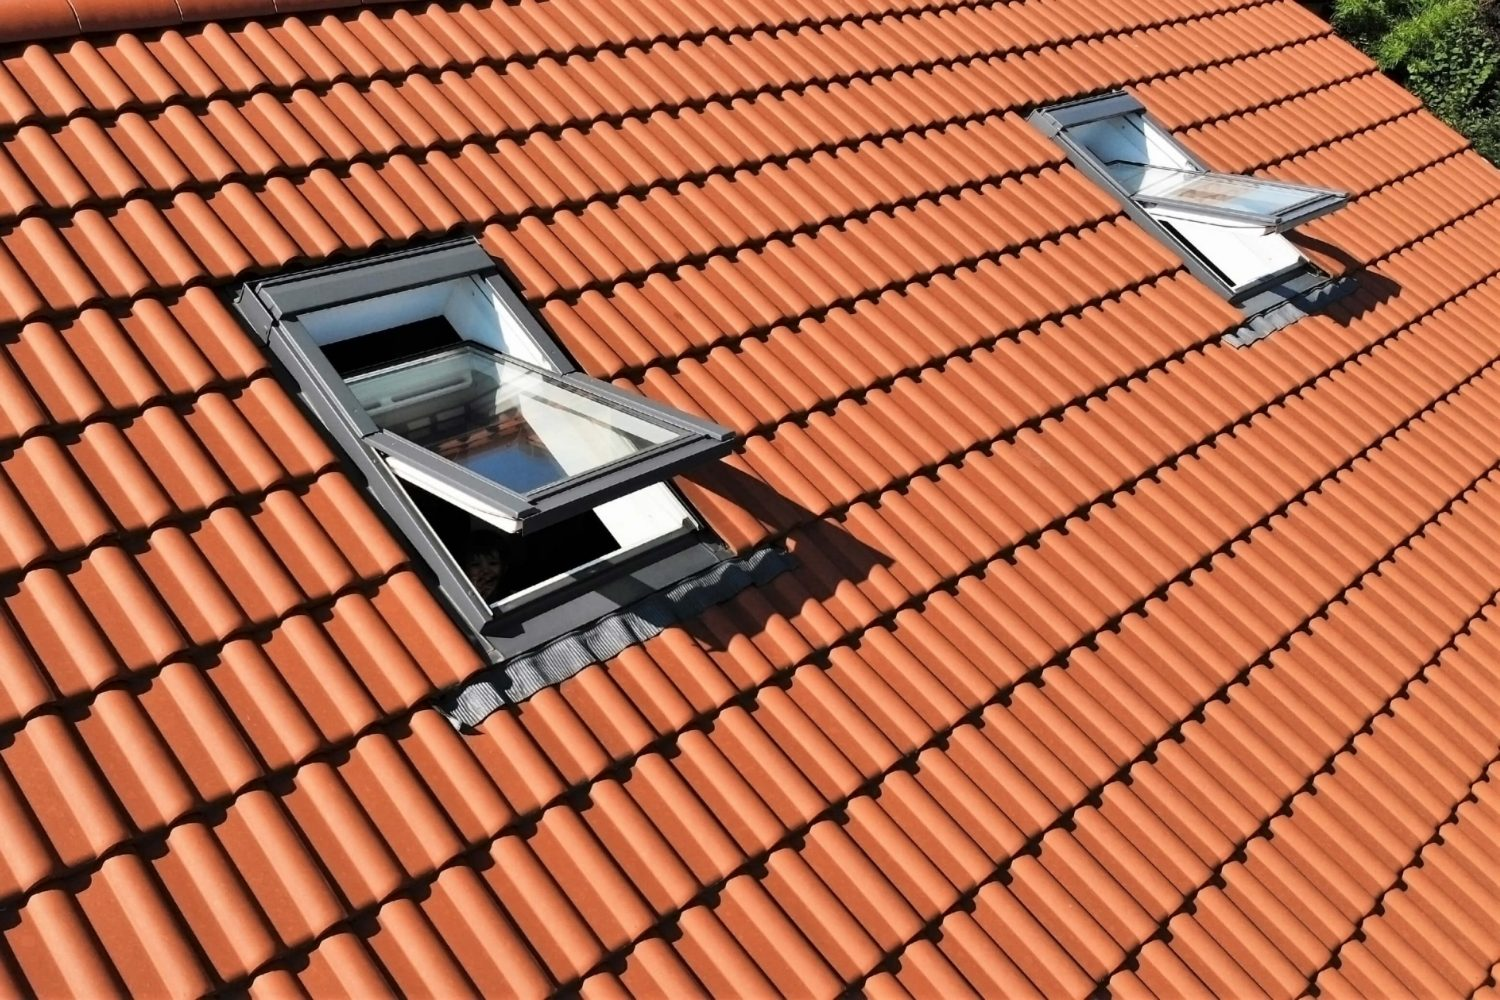 Skylights are a source of water leakage